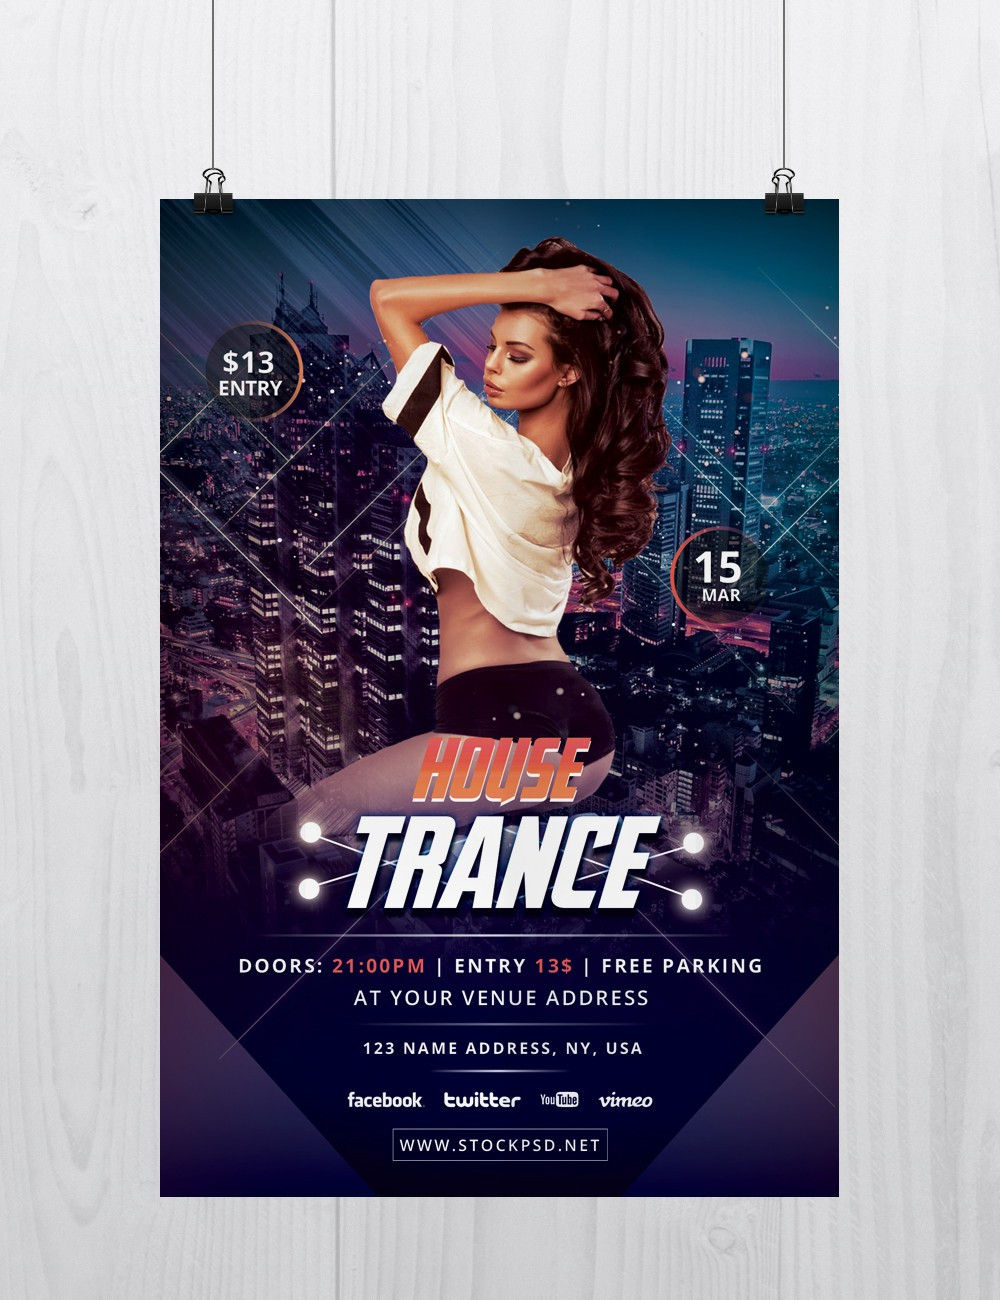 House Trance Download Free Psd Flyer Template Stockpsd